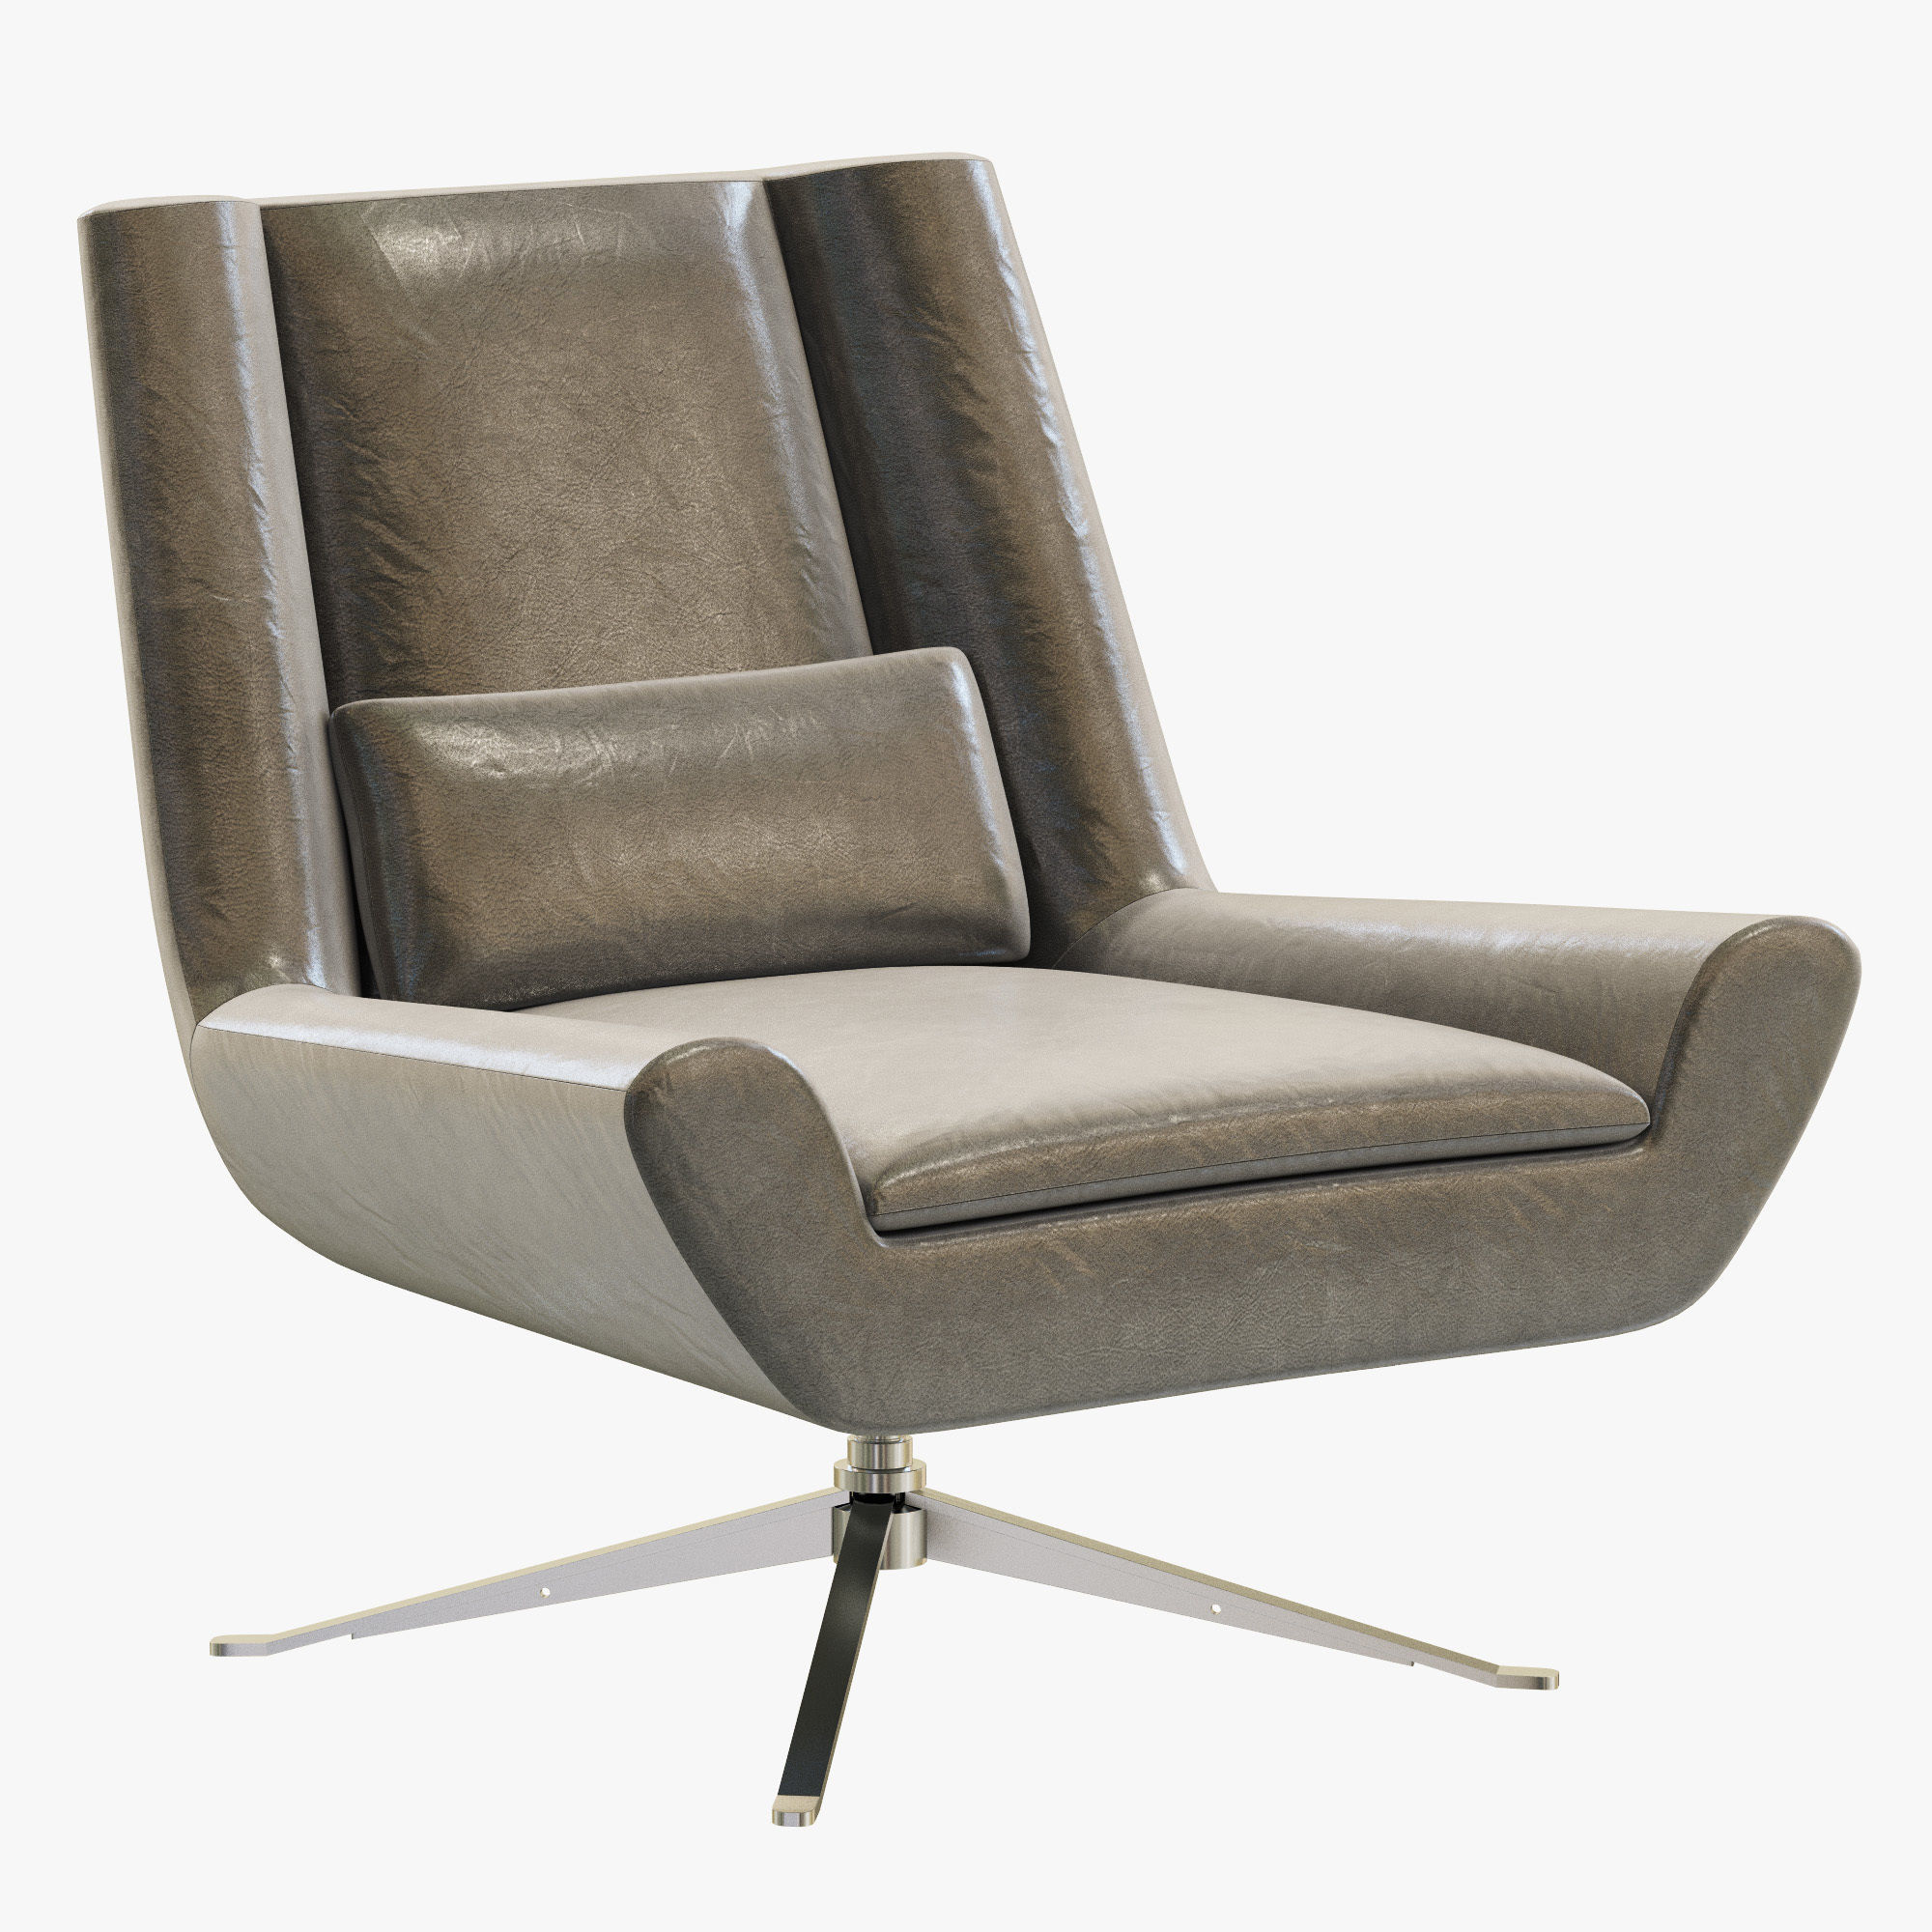 Modern Leather Chairs Rh Modern Luke Leather Chair 3d Model